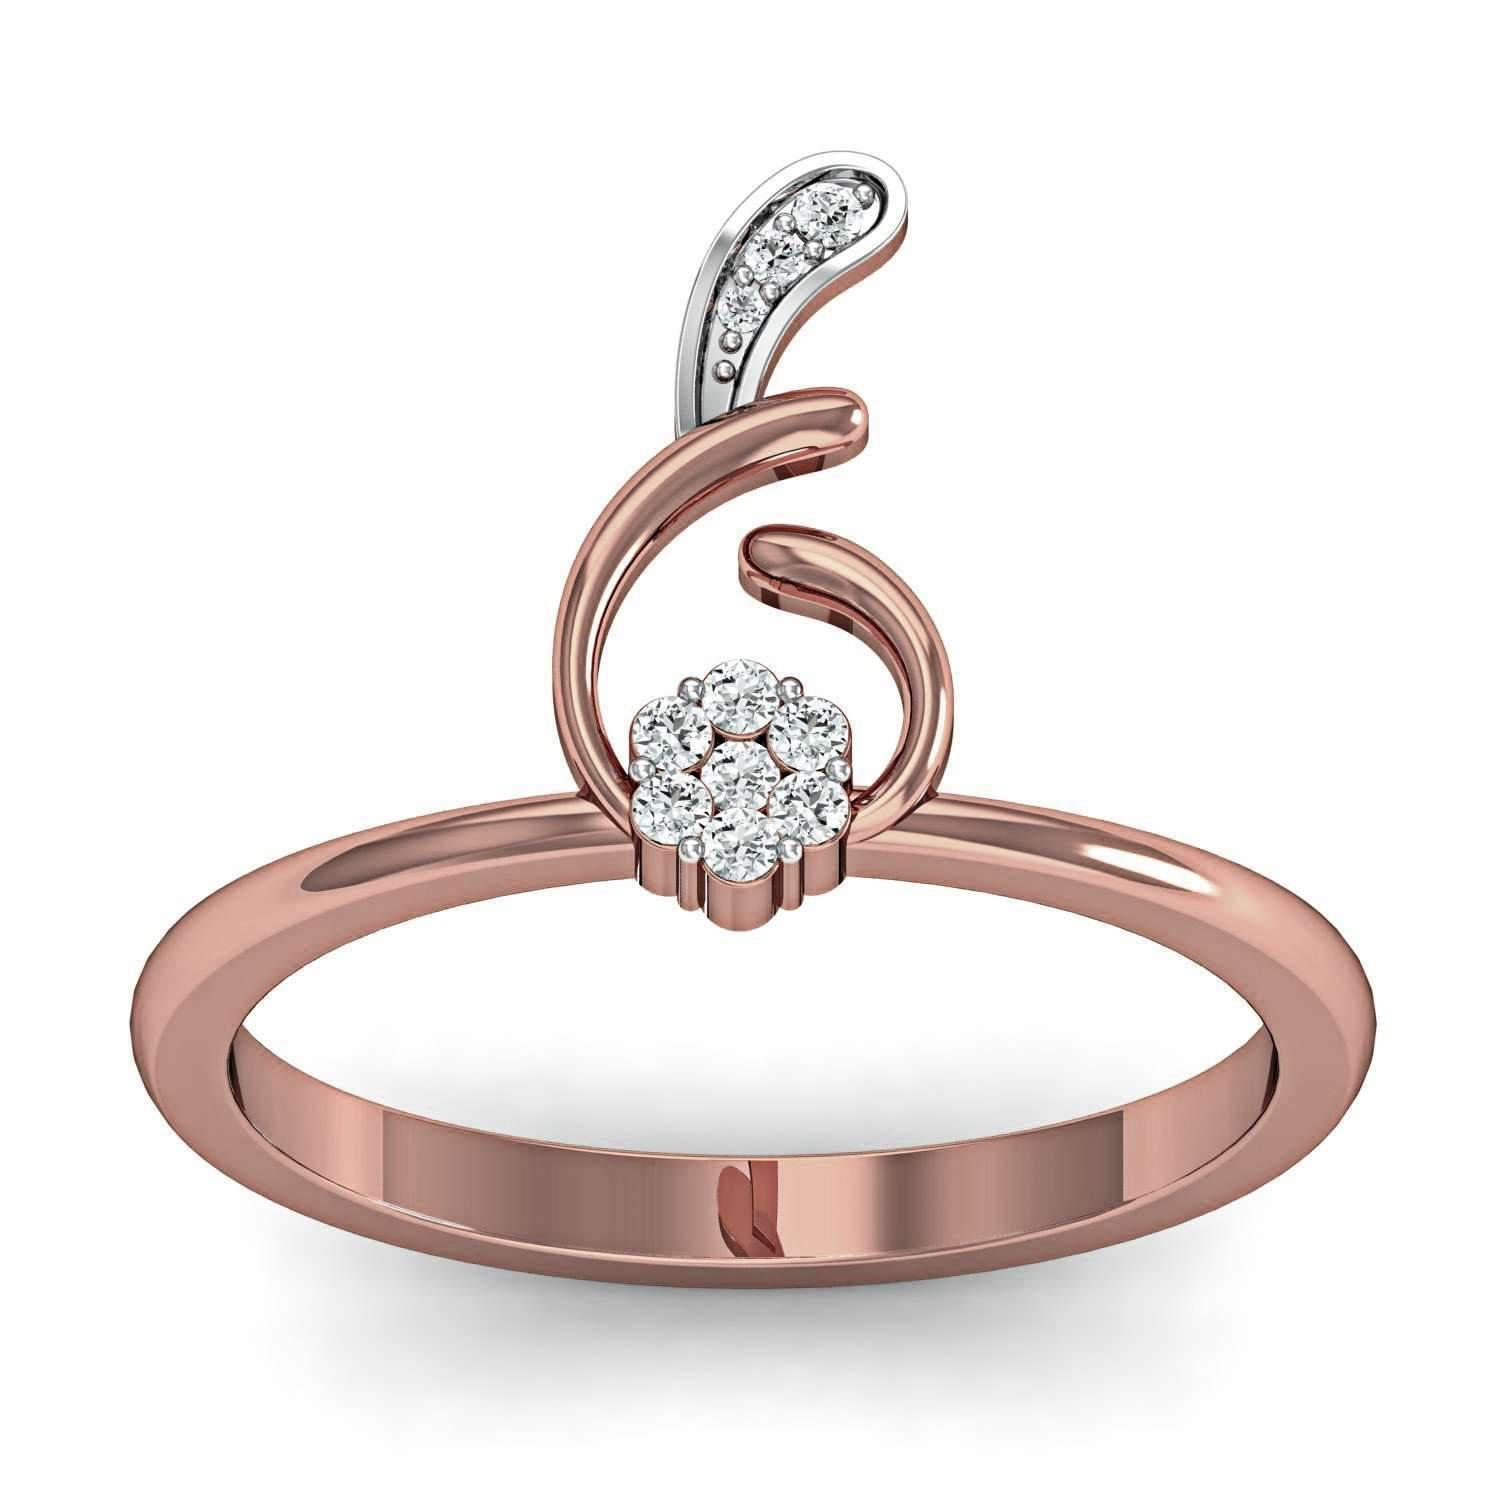 Diamoire Jewels Elegant Diamond Ring in 18kt Rose Gold eZrq2